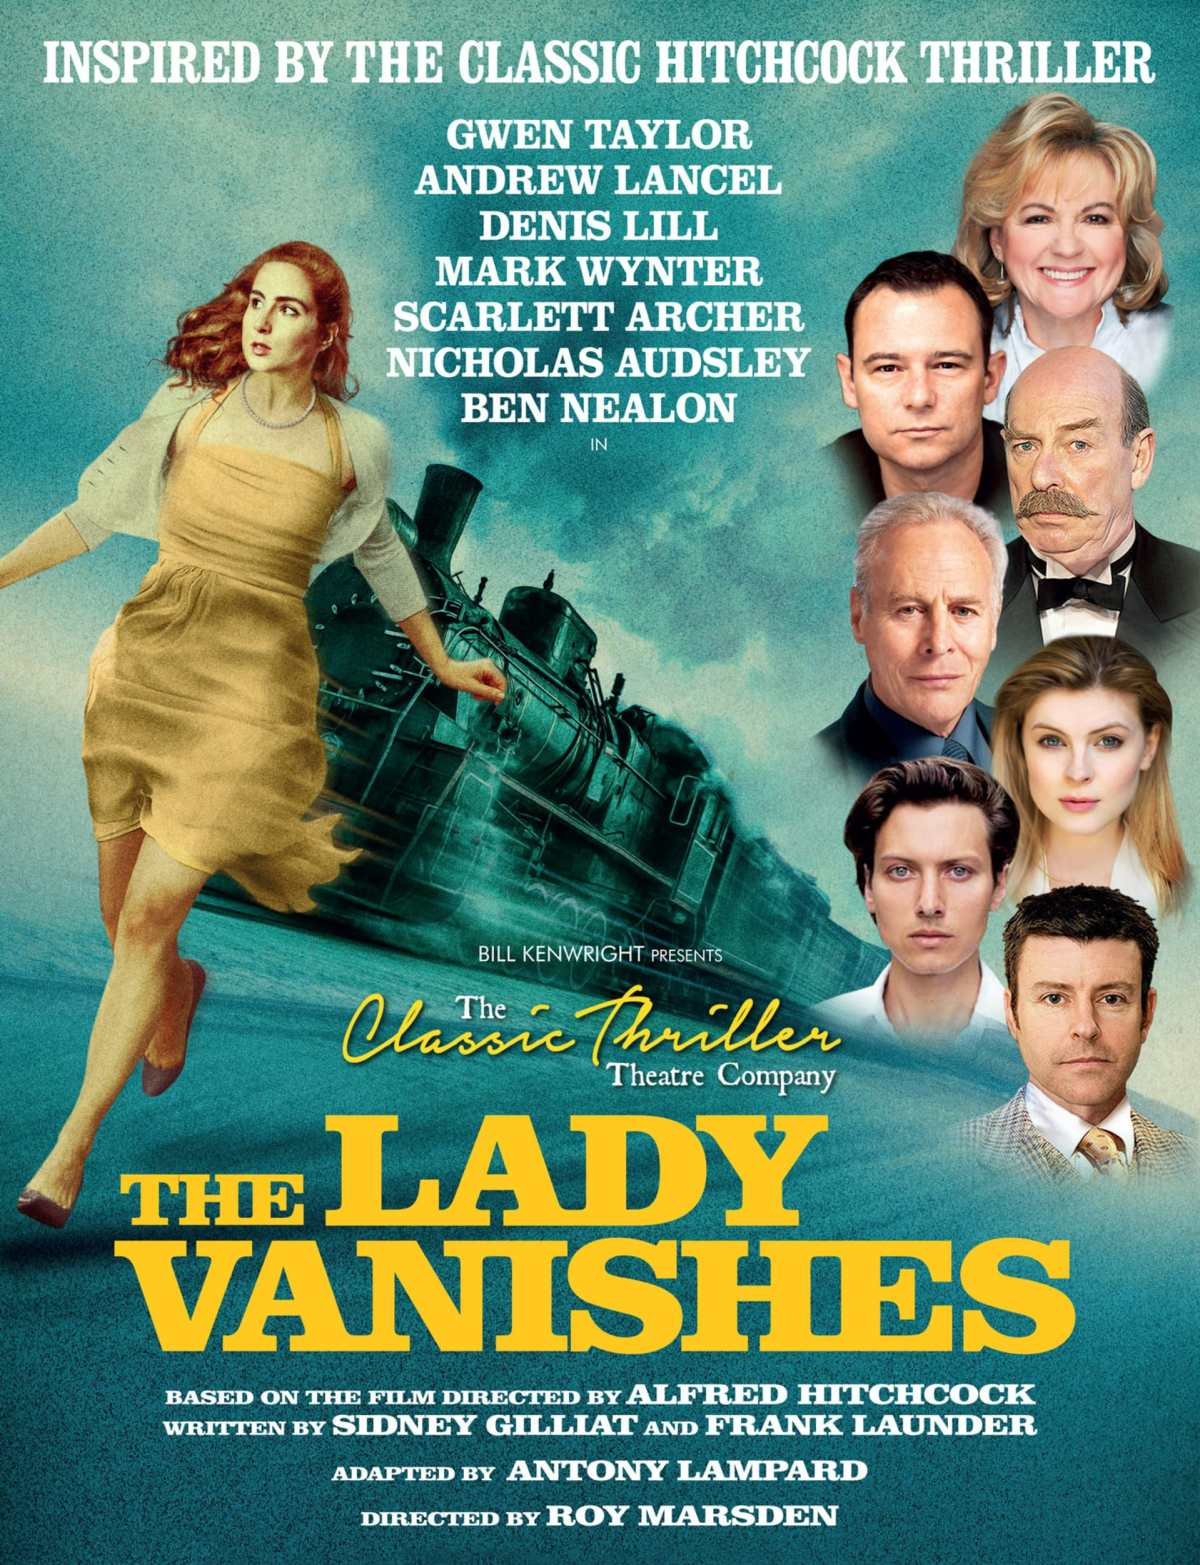 Denis Lill on tour in The Lady Vanishes